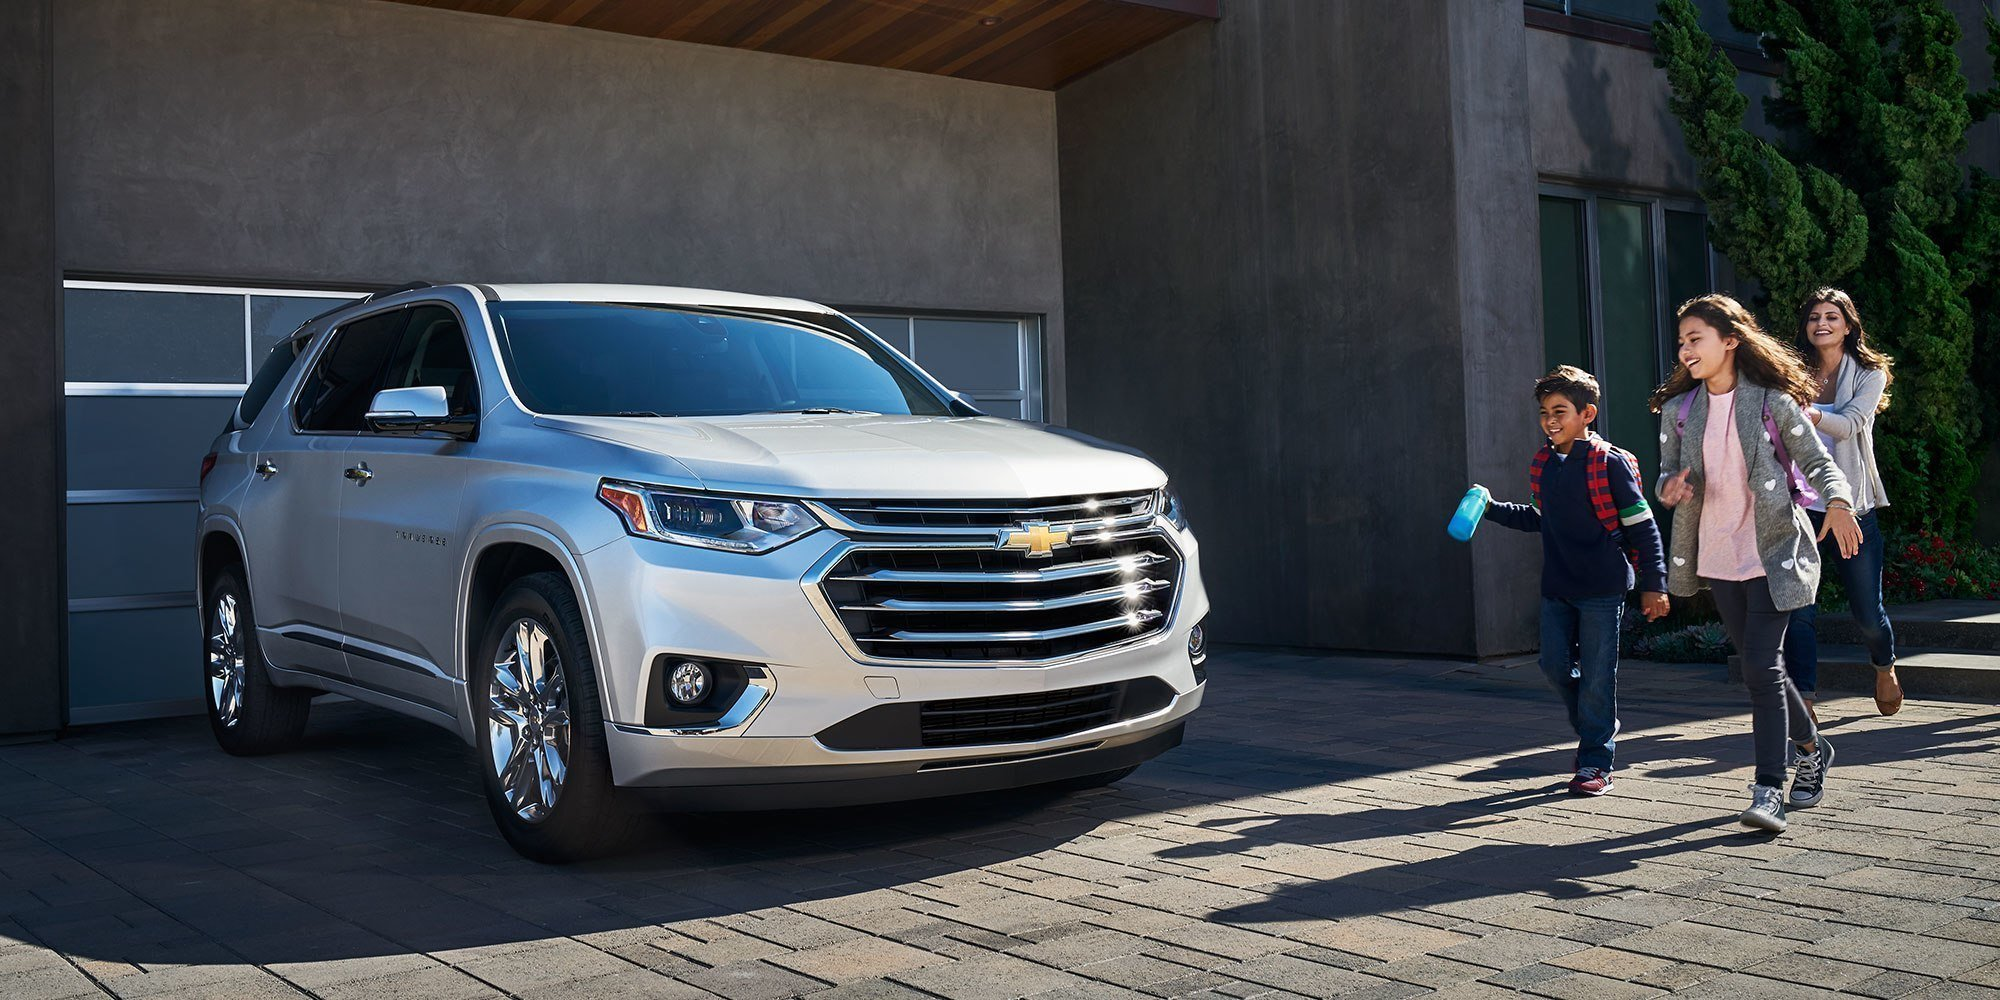 Chevrolet Traverse Lease Incentives & Prices Helena MT